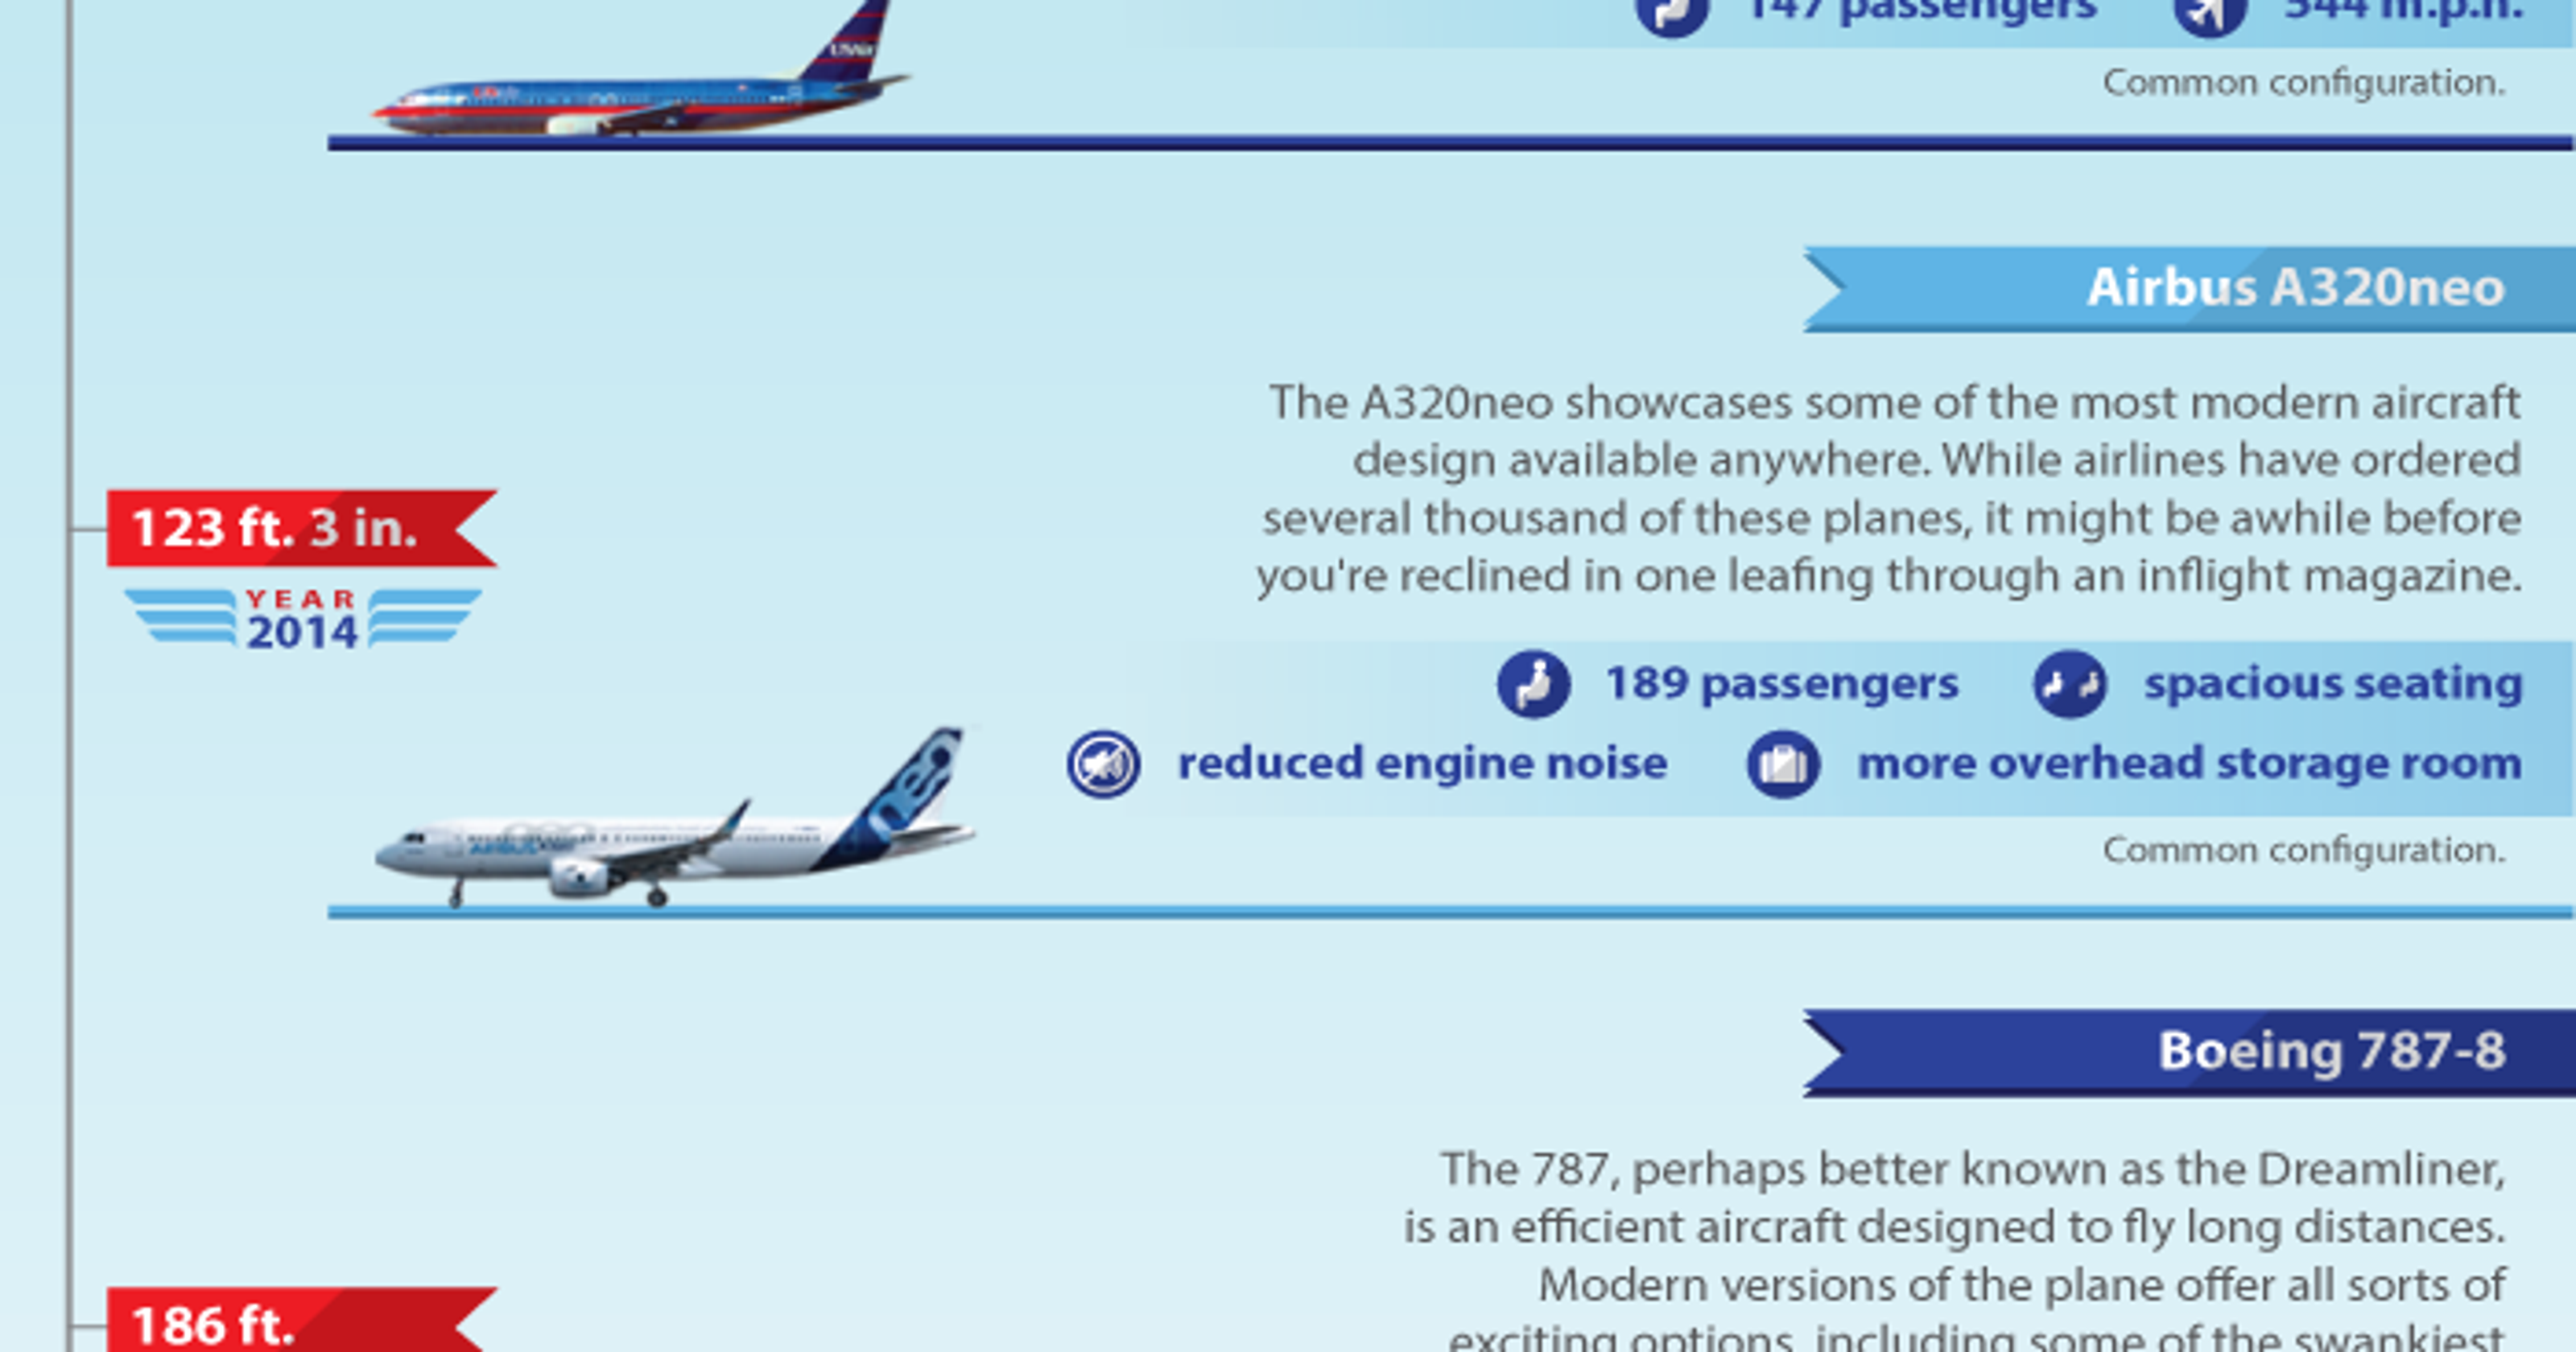 This cool infographic shows how commercial airplanes have